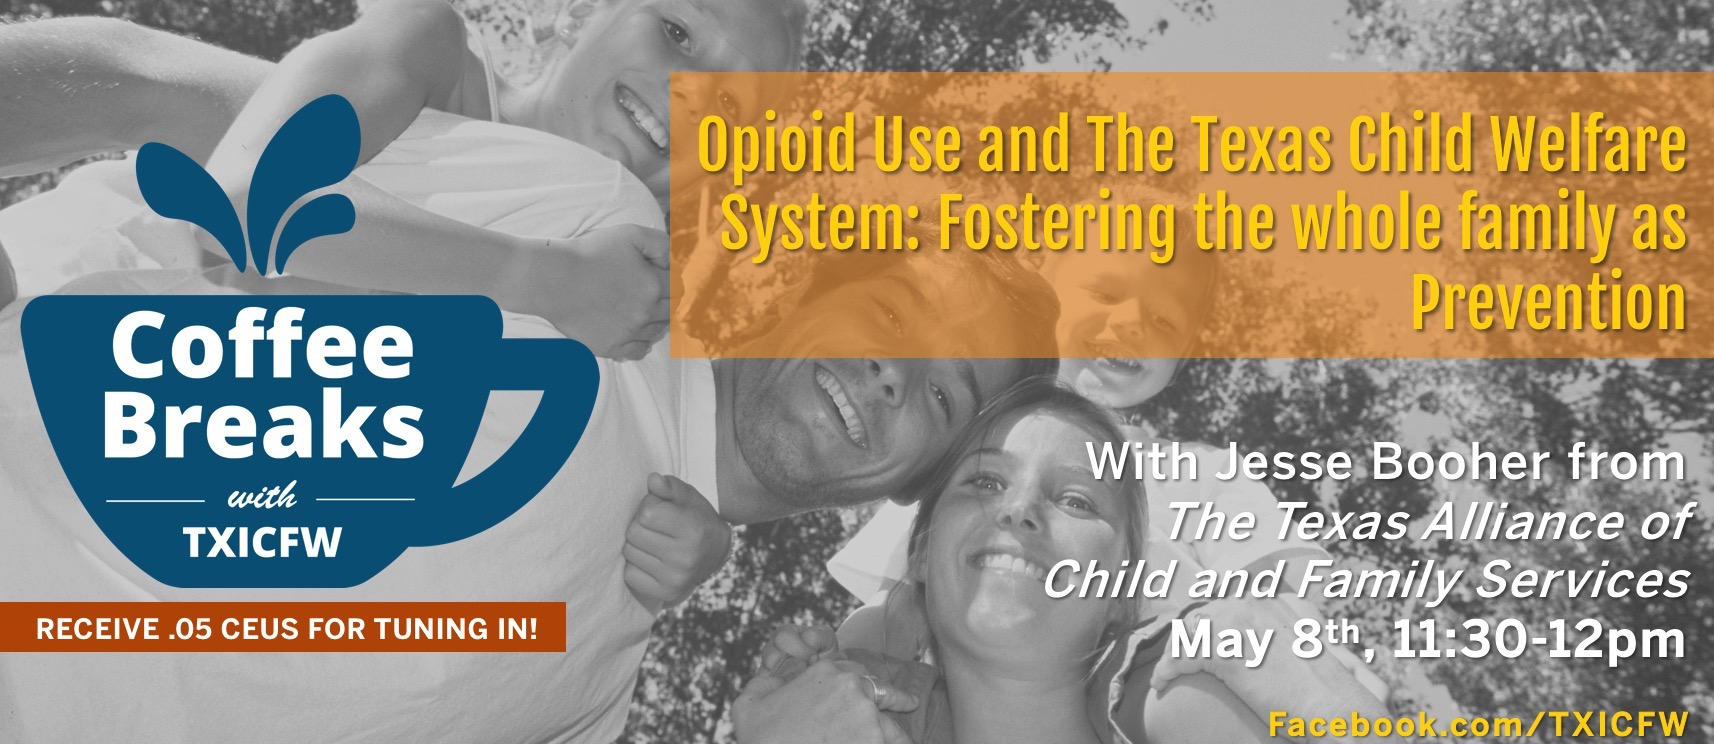 Opioid use and child welfare